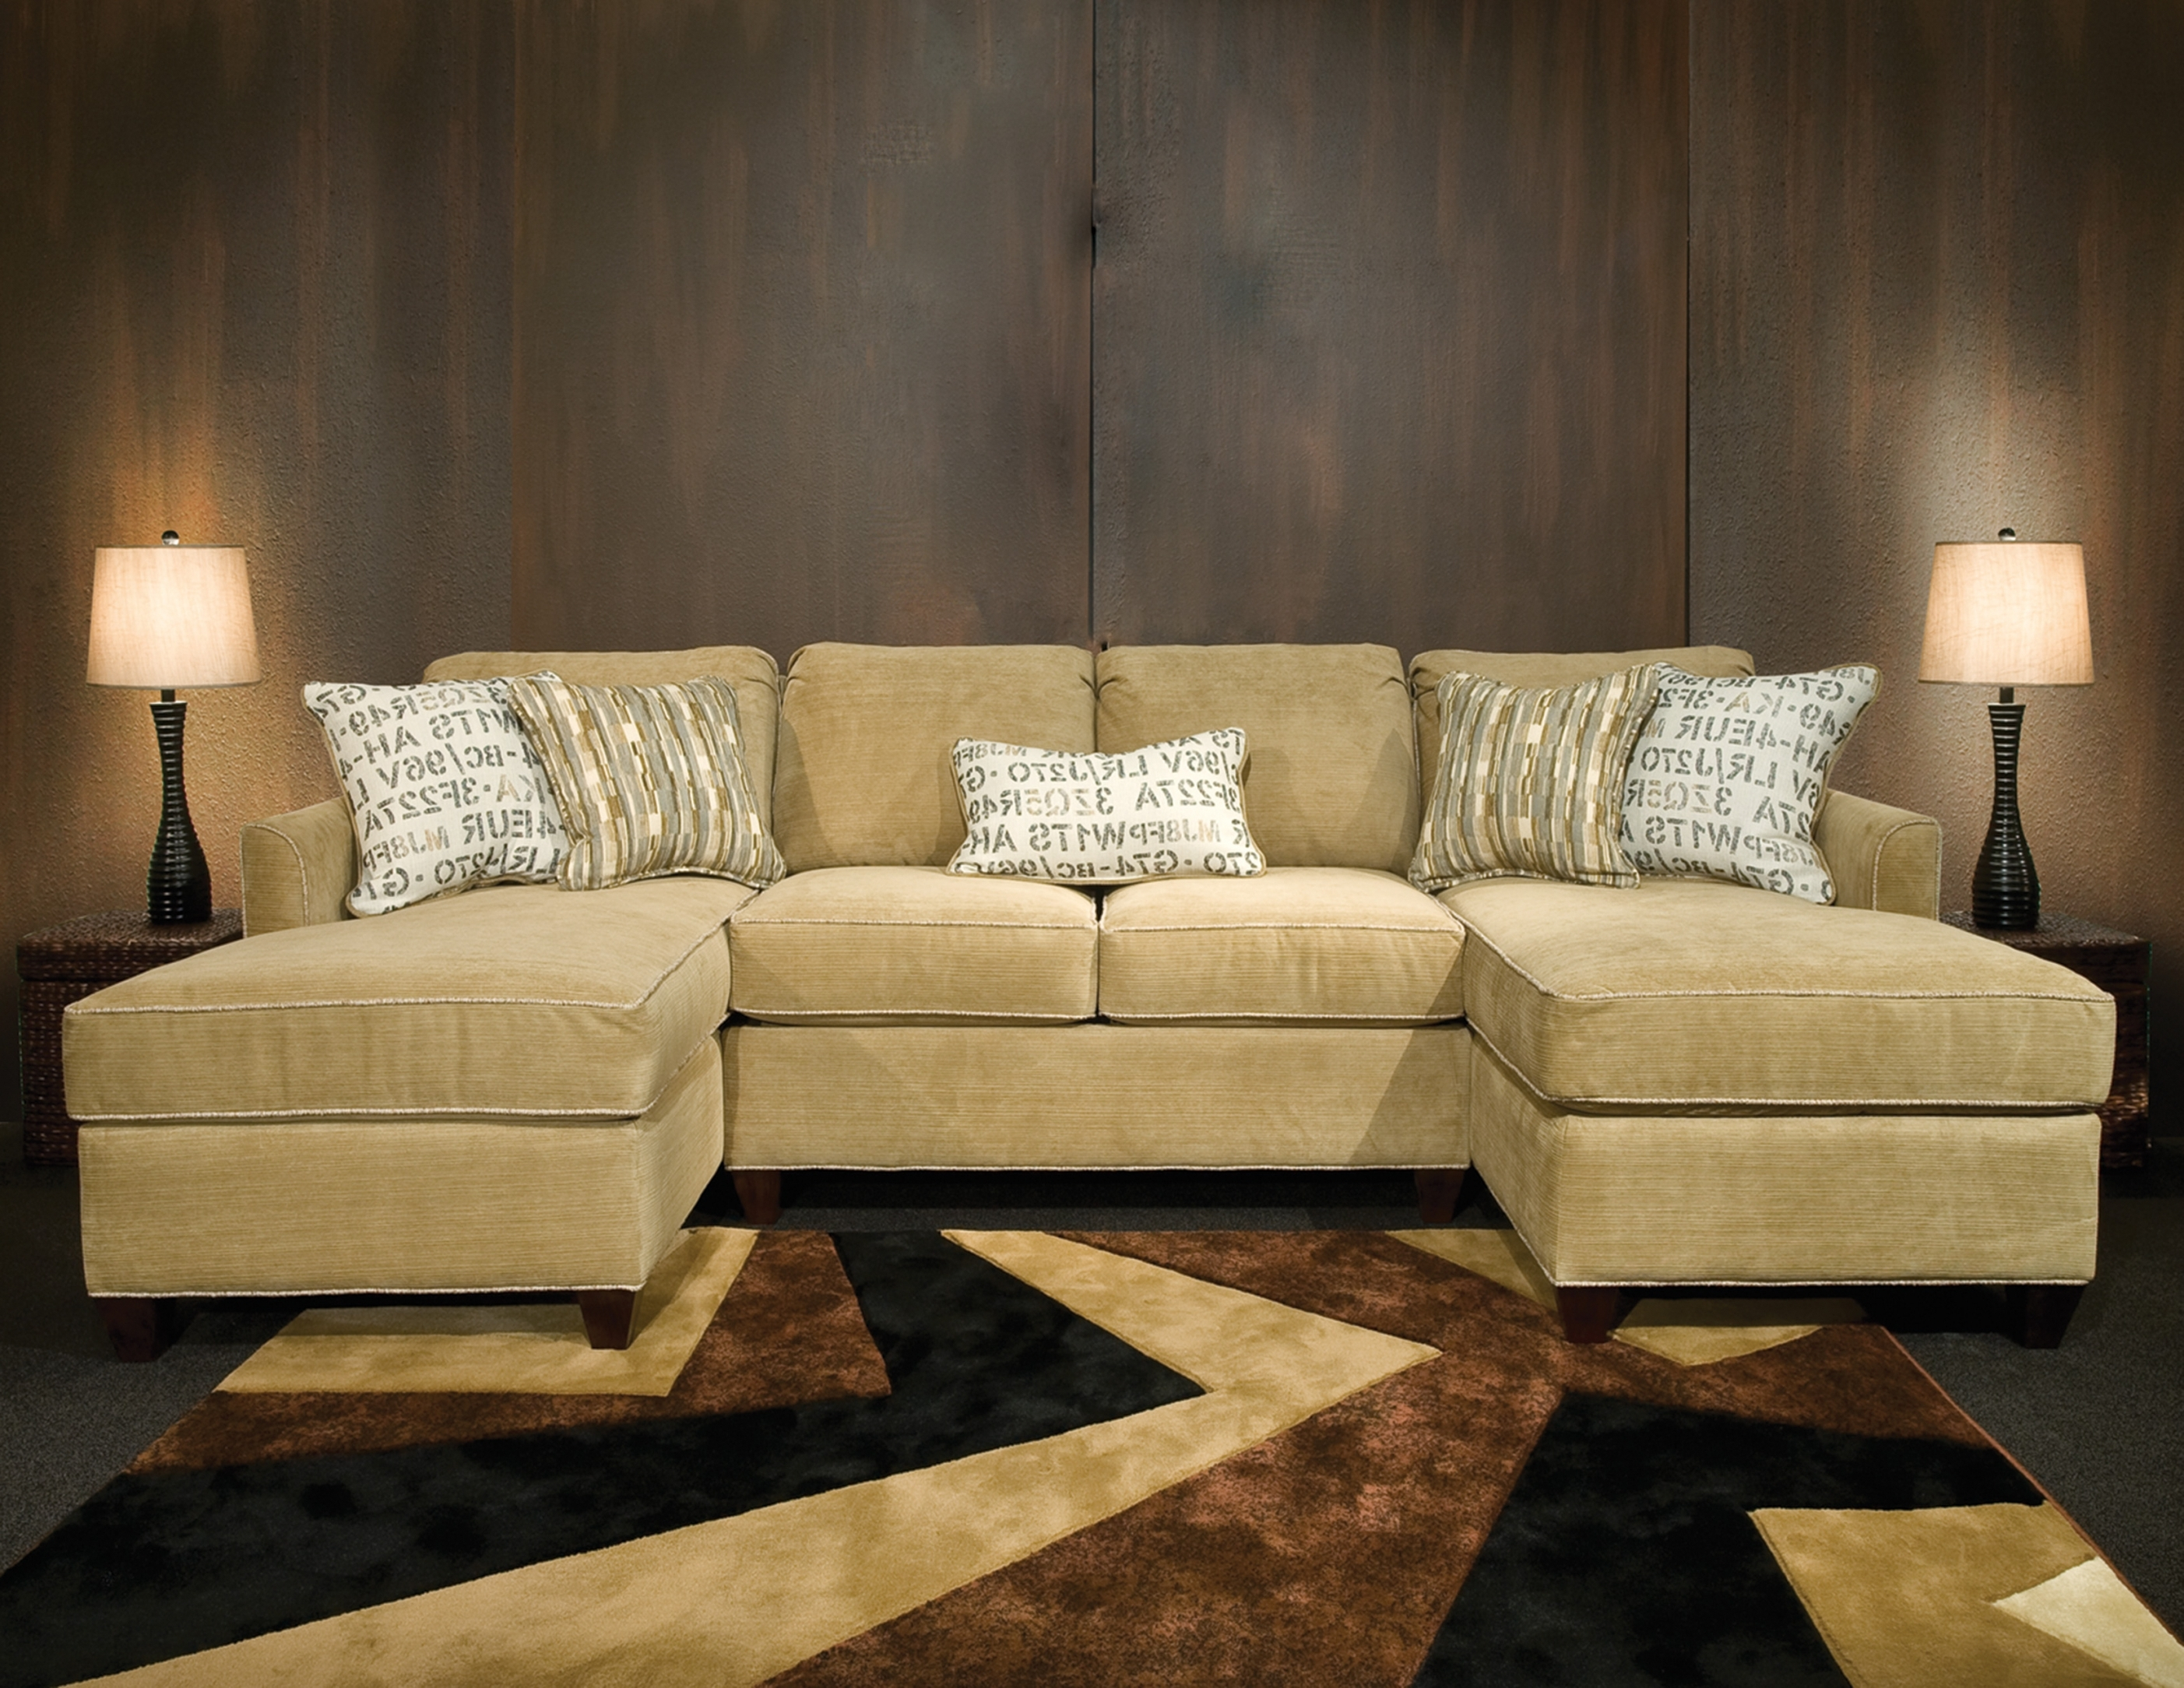 Amusing Double Chaise Sectional Sofa 22 On Black Fabric Sectional Within Current Dual Chaise Sectionals (View 2 of 15)